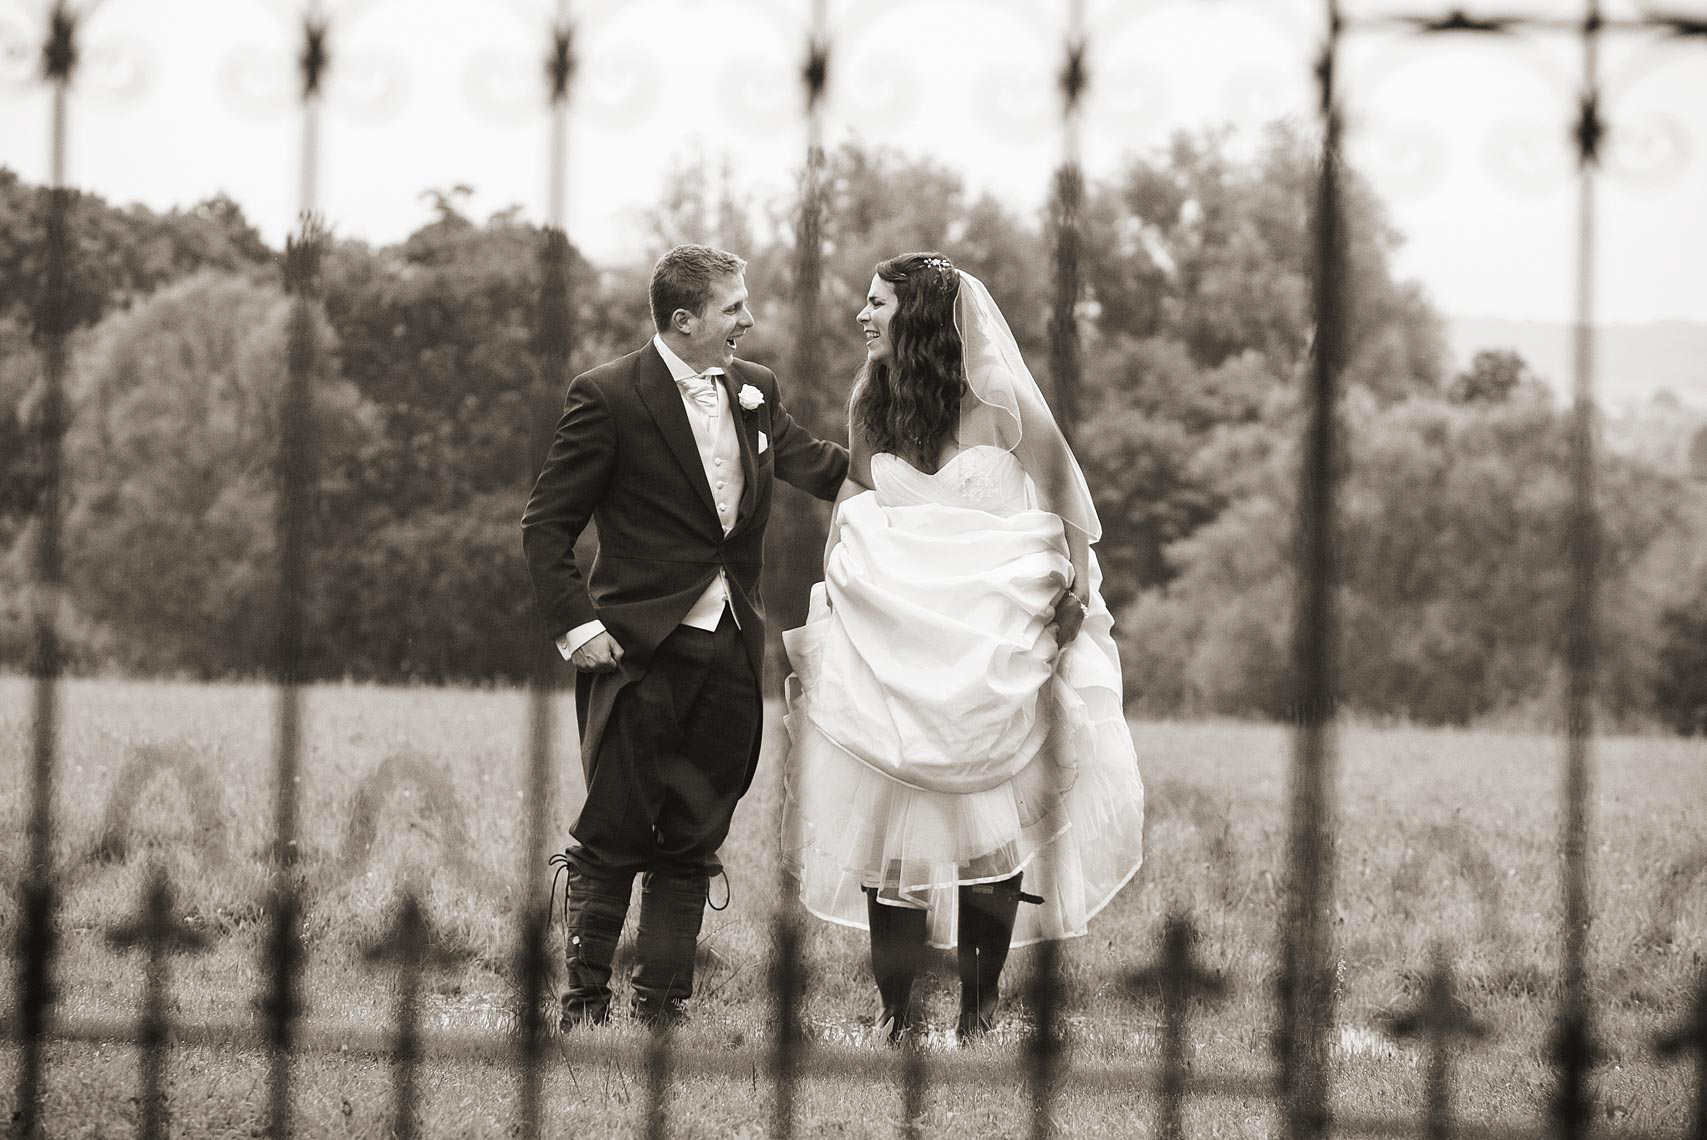 documentary-wedding-picture-DUP.jpg